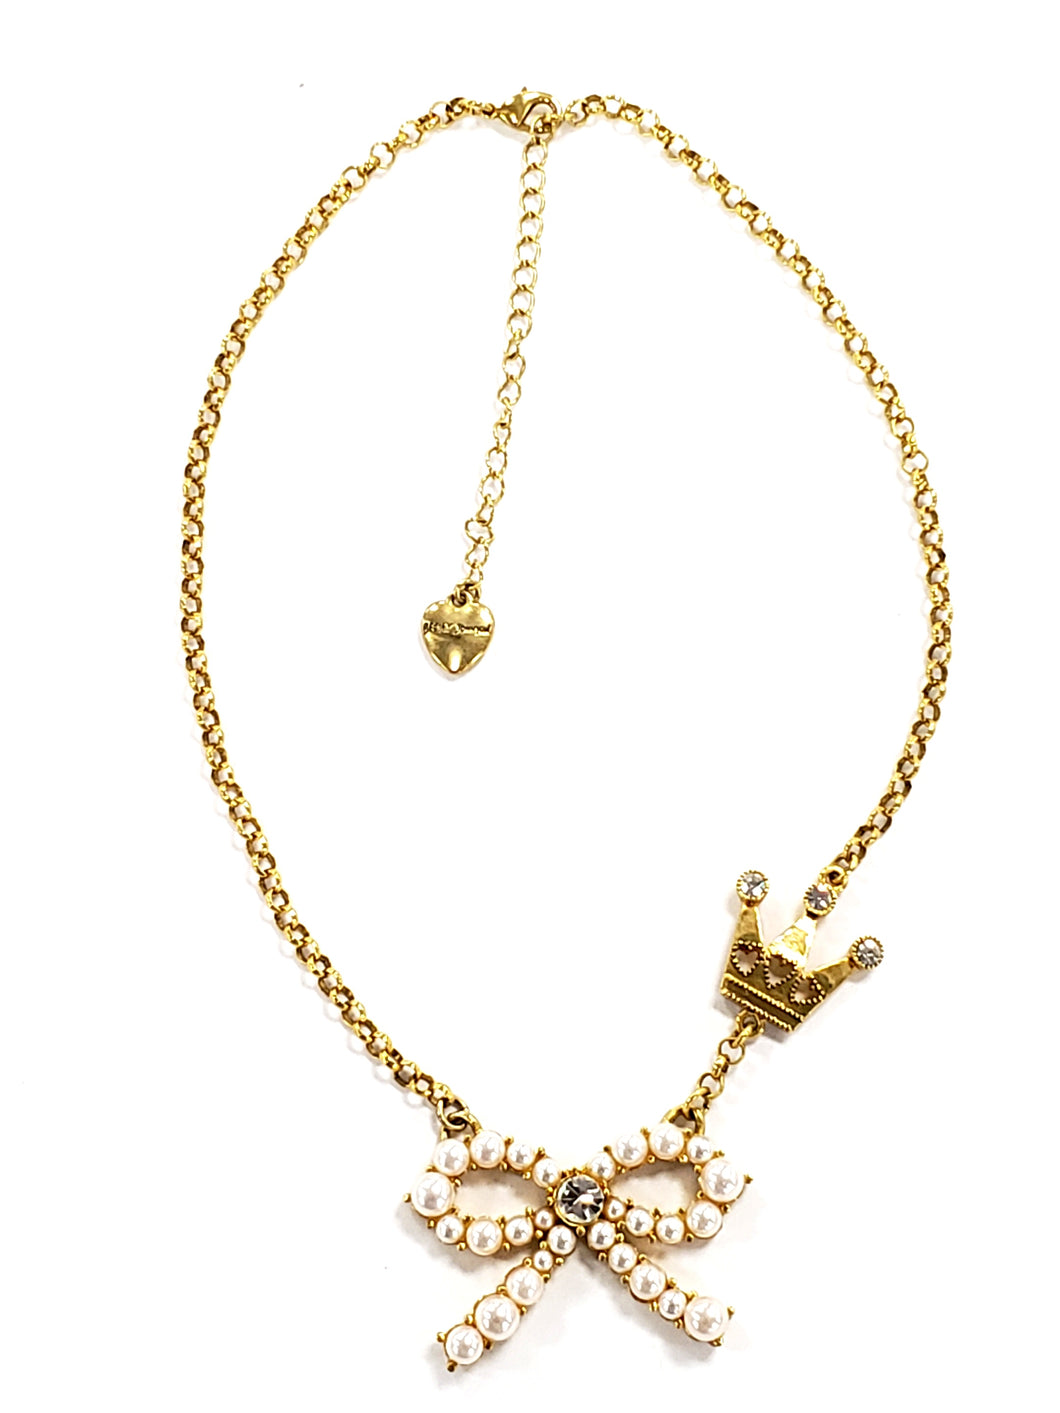 Betsey Johnson Ladies Necklace - Goodwill of Central Florida